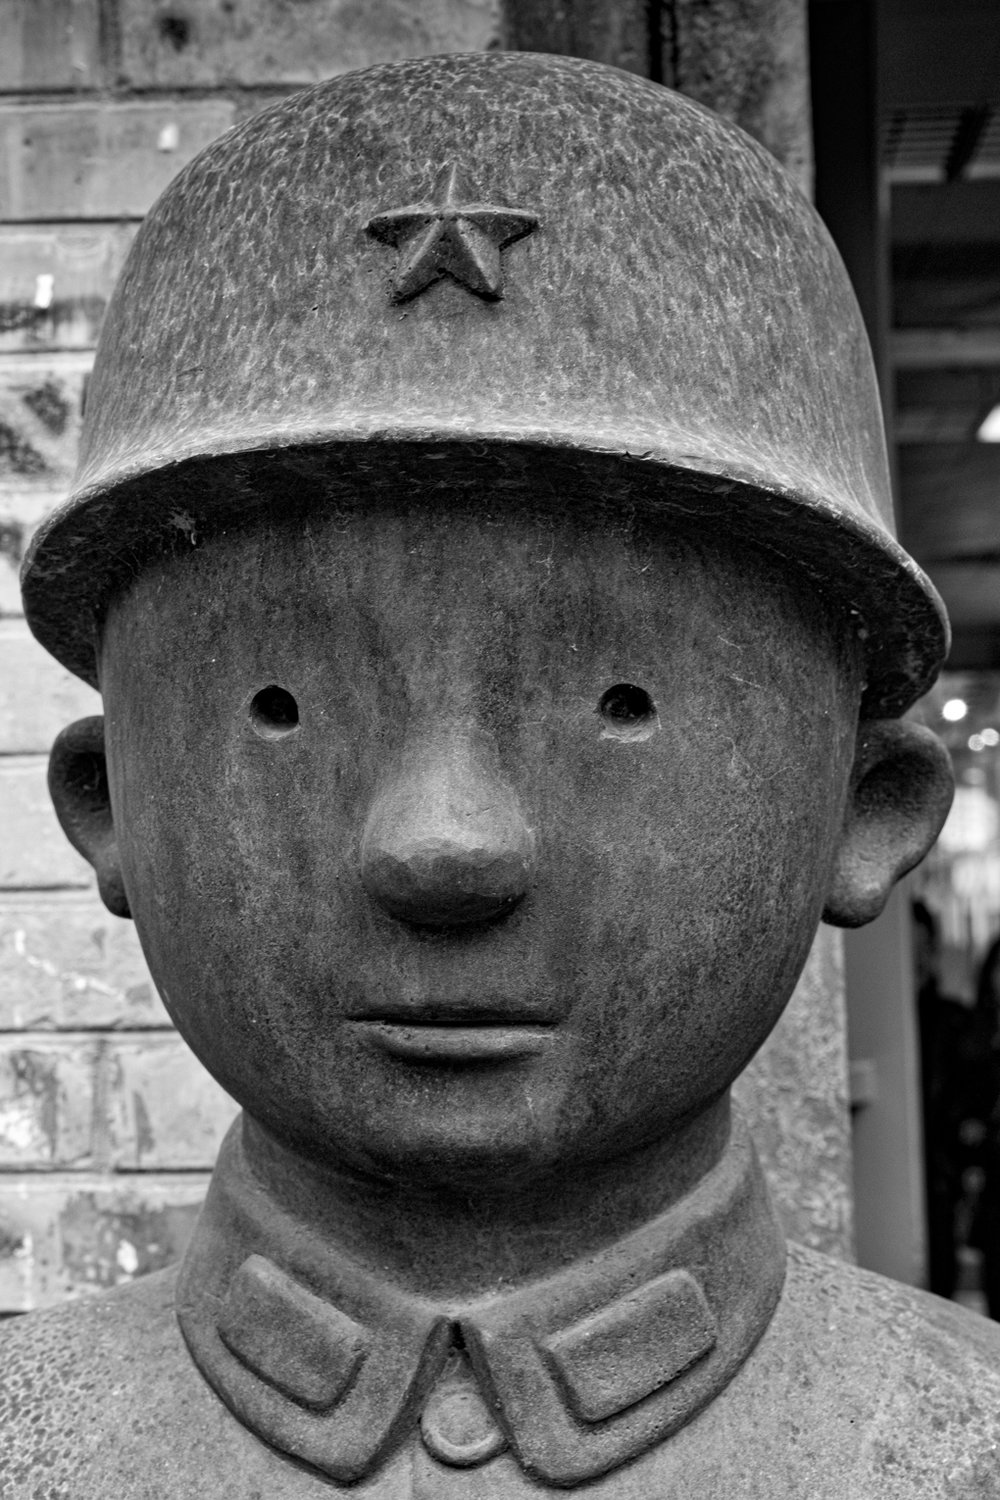 Medium_China_soldier_statue_art_B&W.jpg